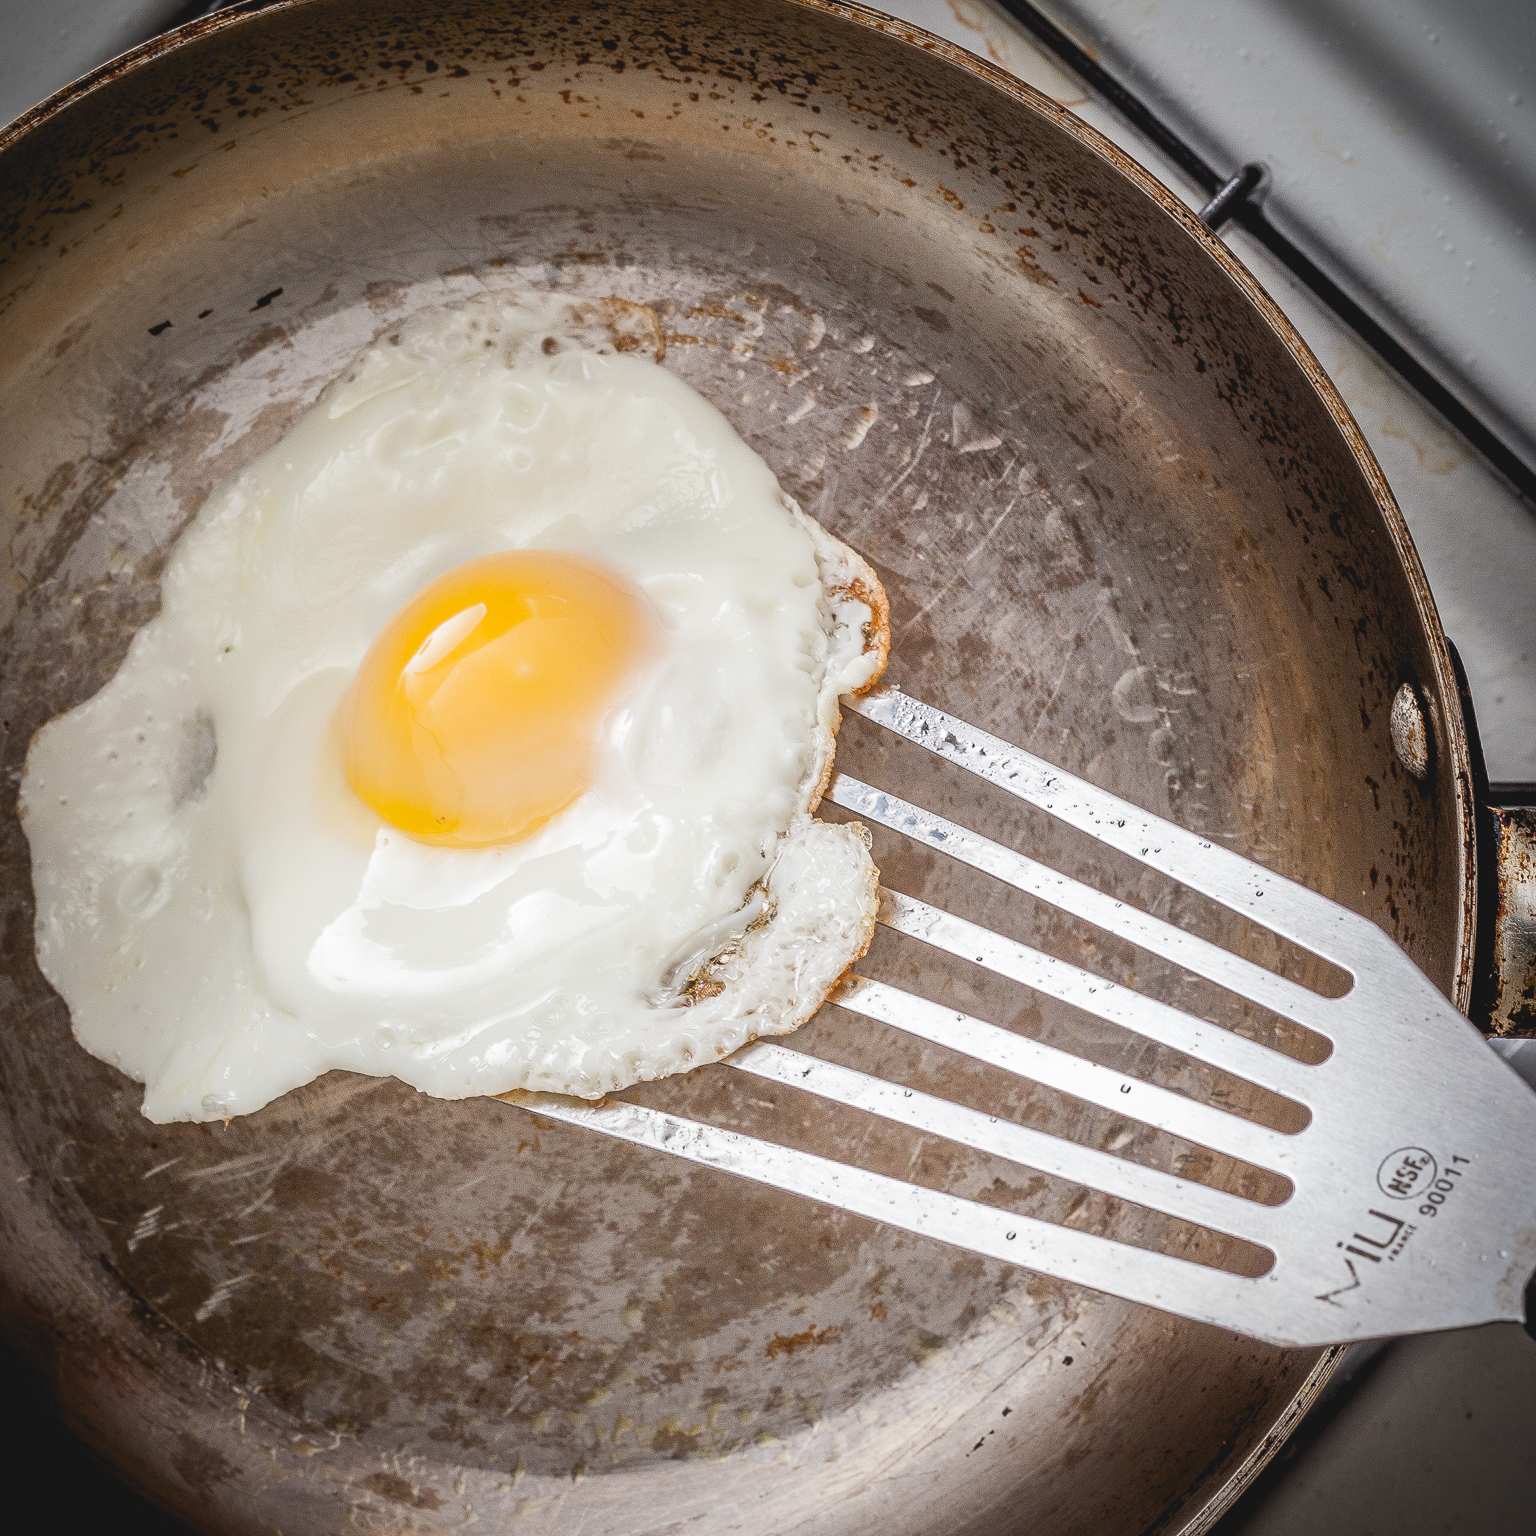 How To Make Your Stainless Steel Pans Nonstick That